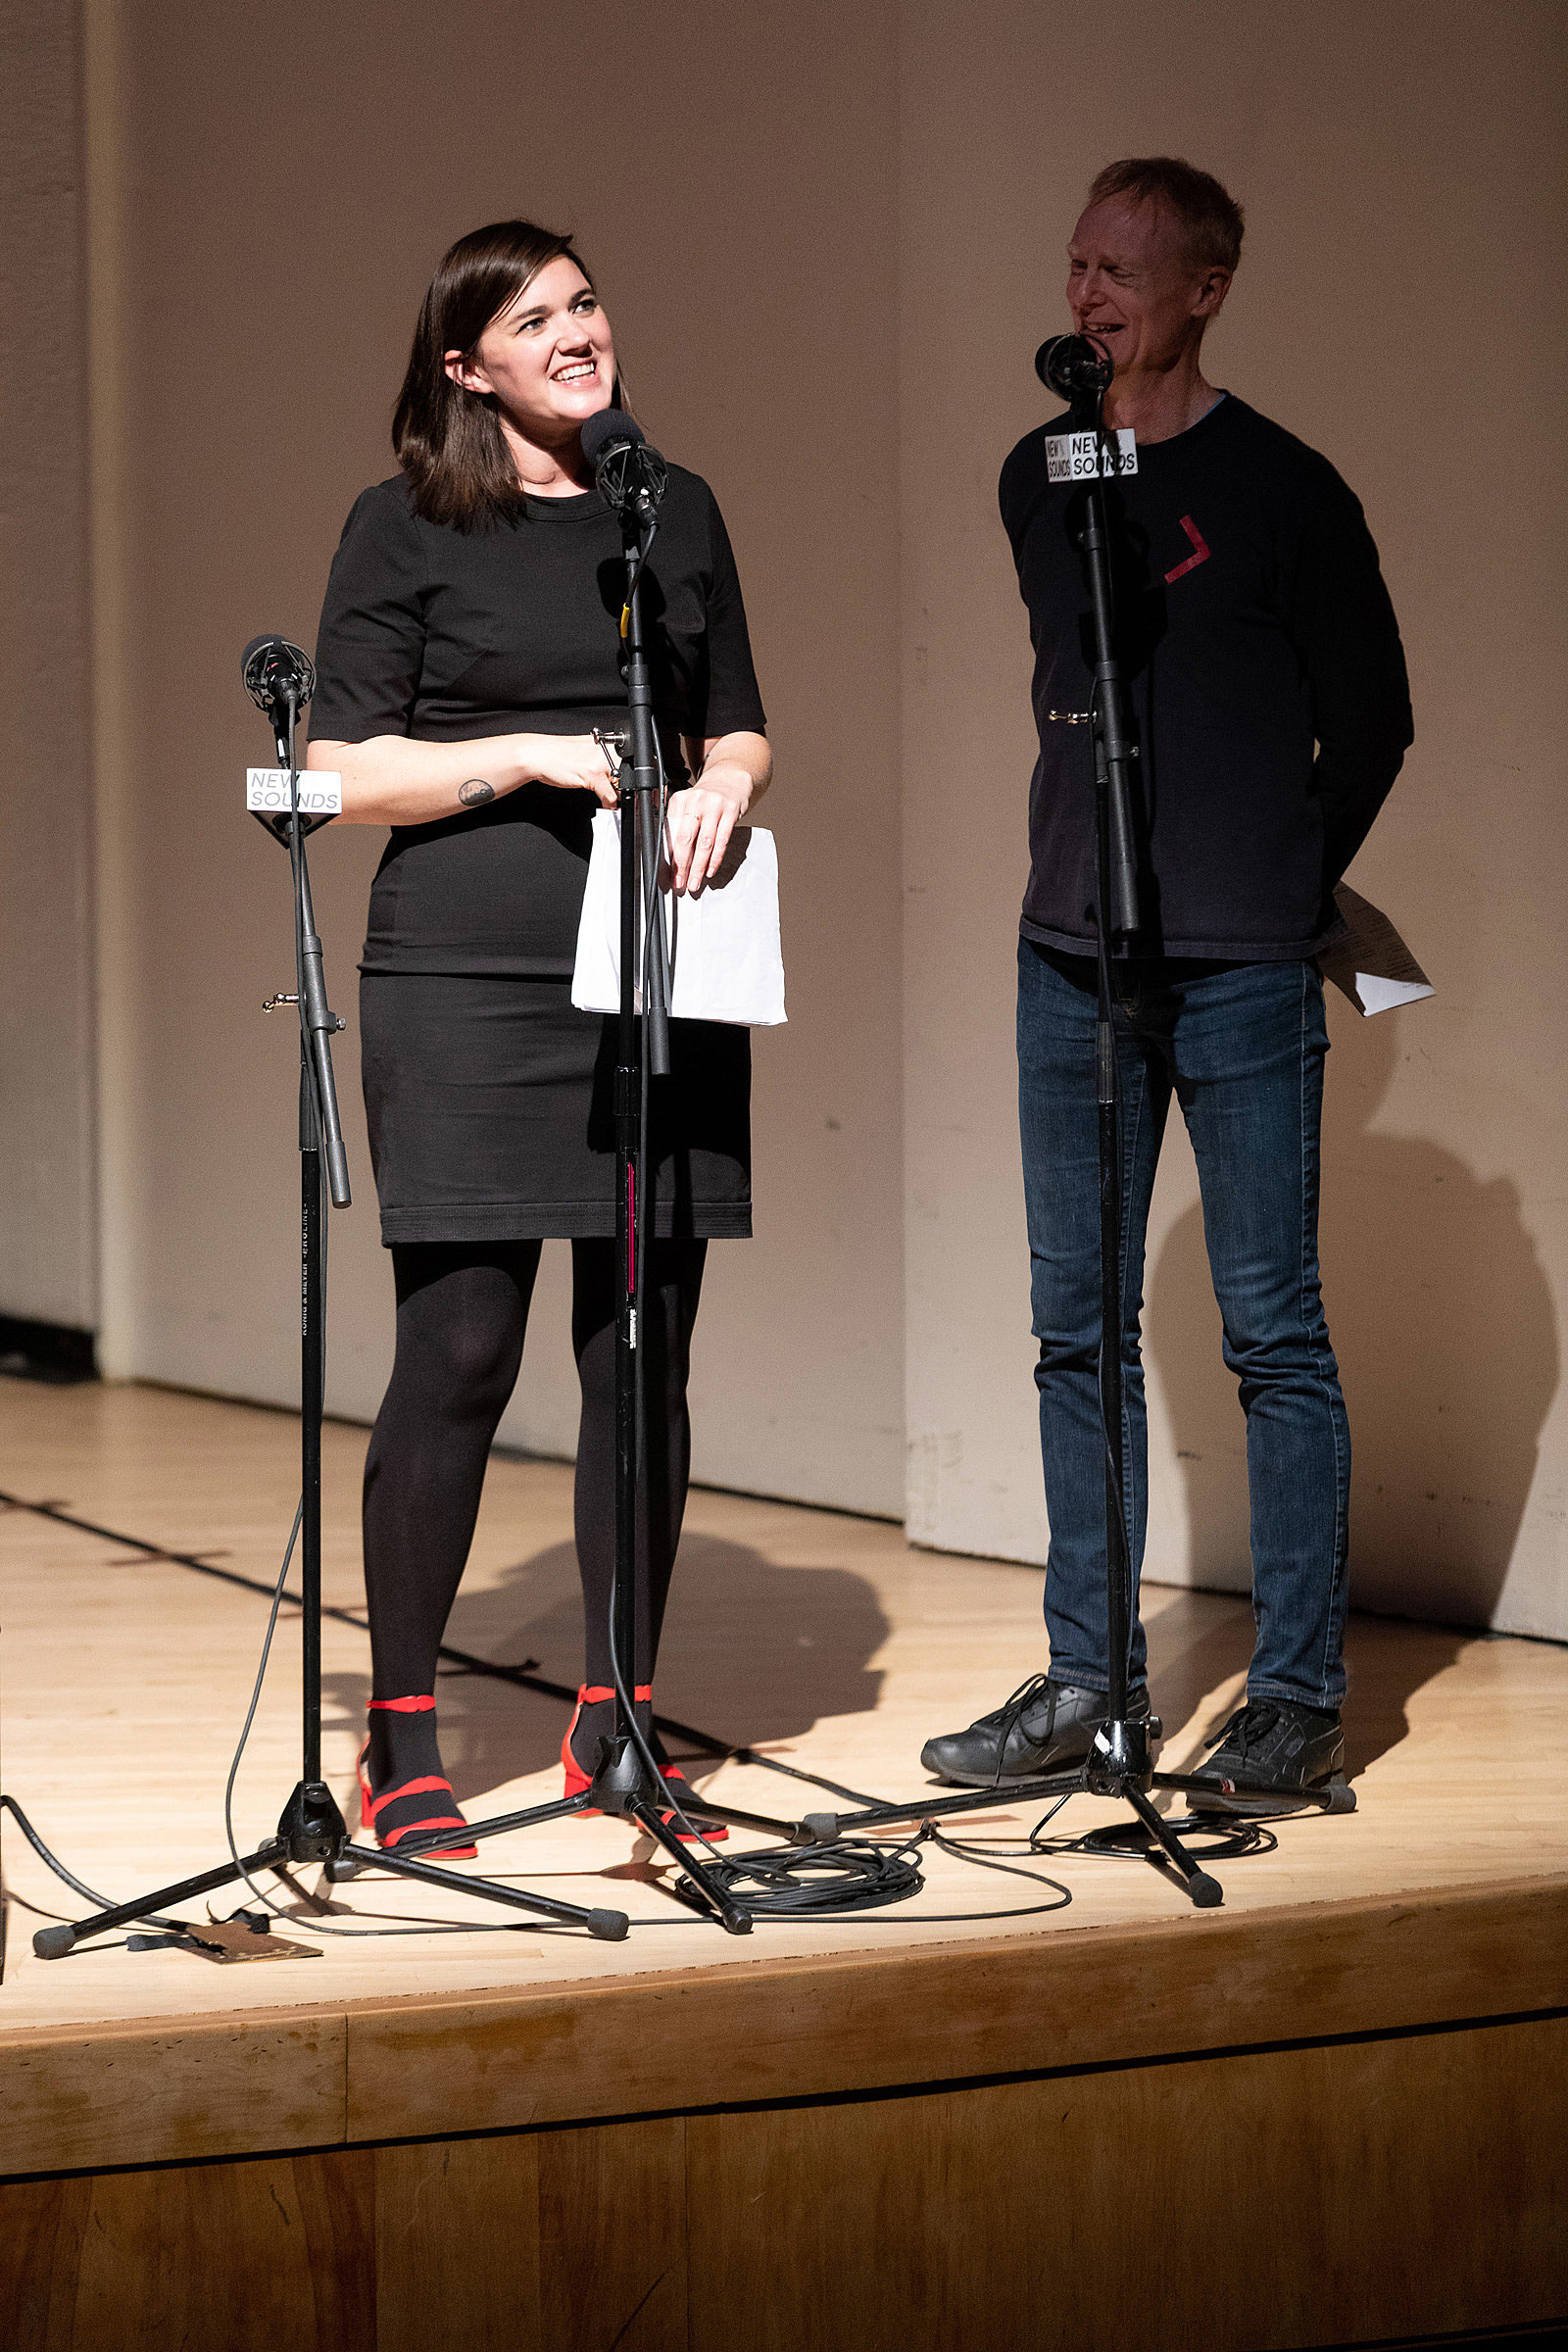 Jon Schaefer and Juliana Barwick at Ecstatic Music Festival 2018 (more by David Andrako)